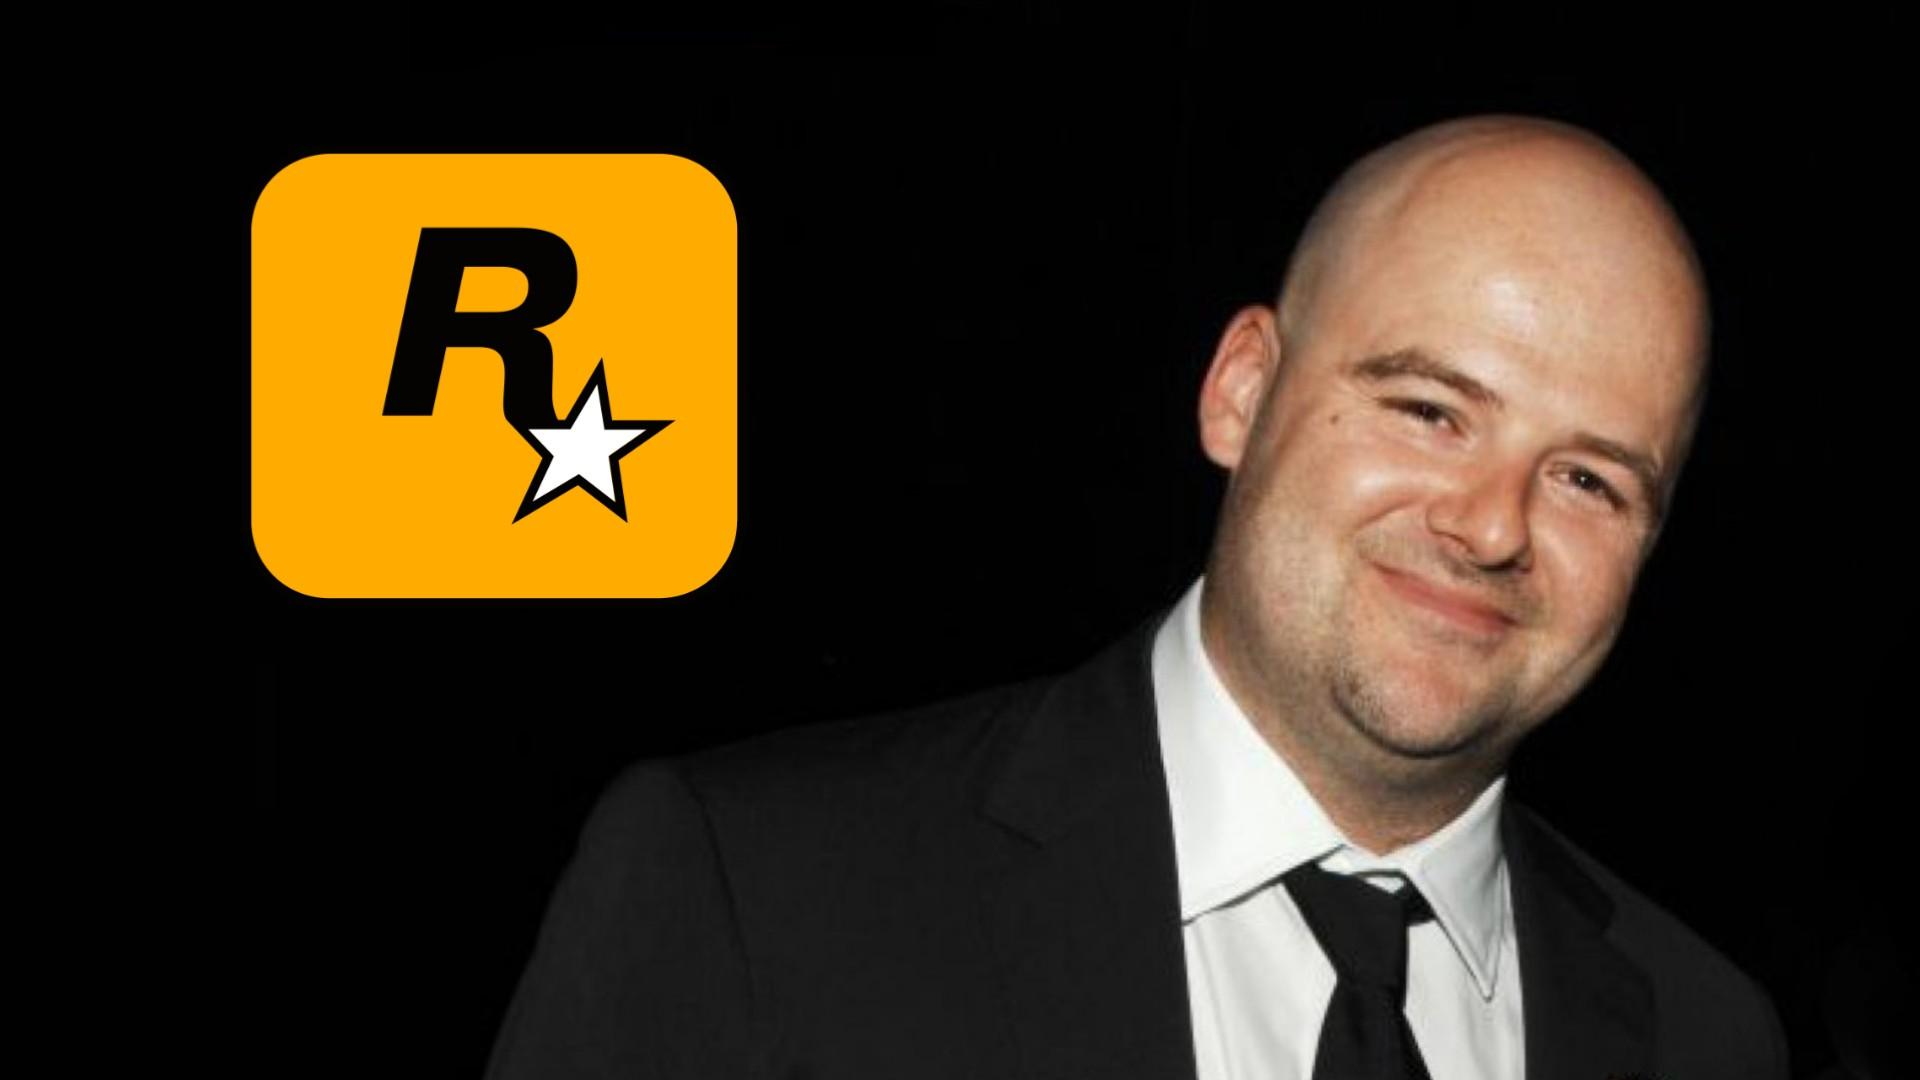 Rockstar Games Co-Founder Dan Houser will be leaving on March 11 2020